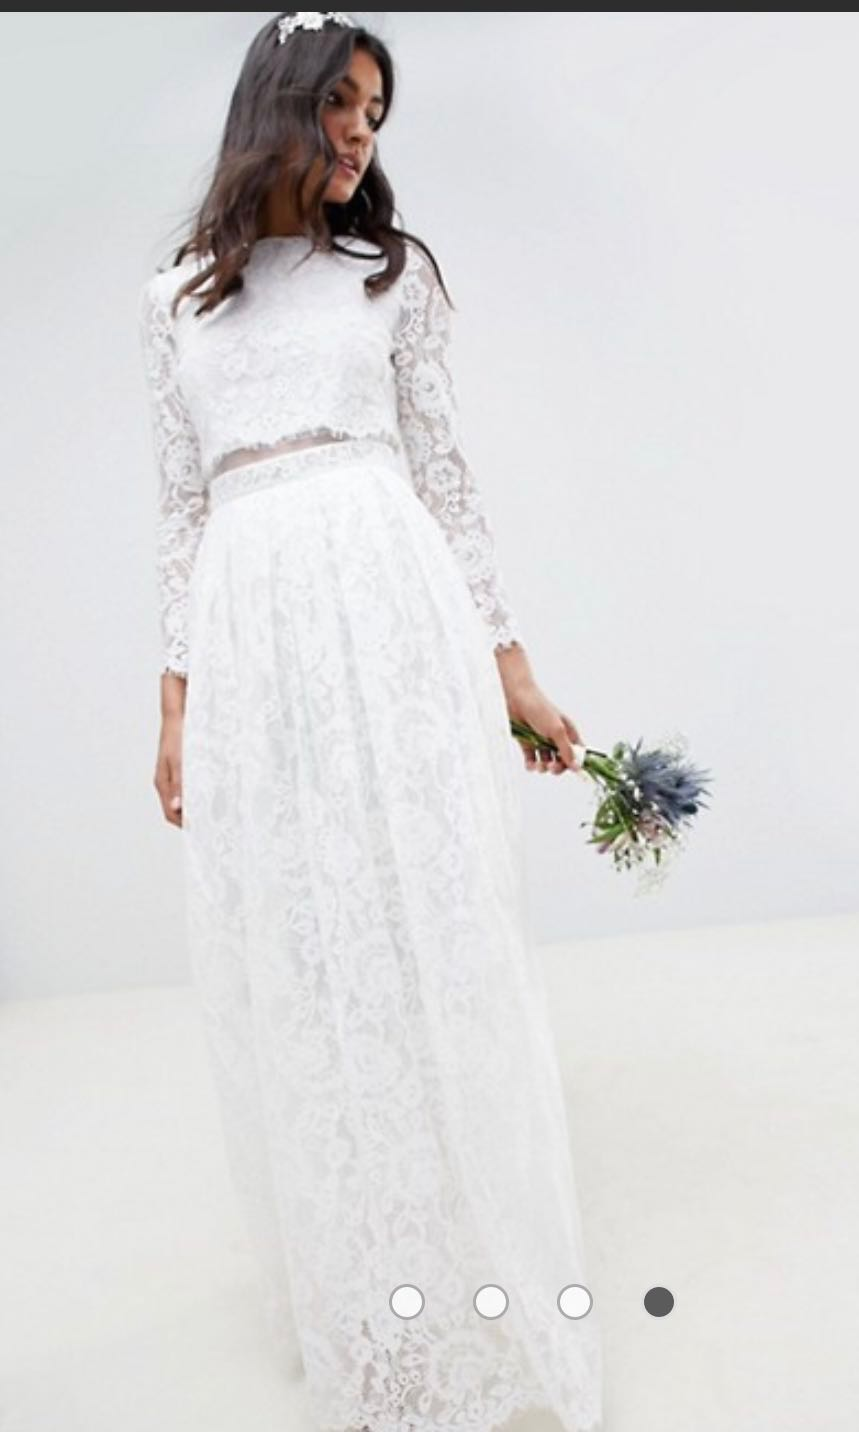 6c0299eef1bf ASOS Lace Long Sleeve PWS/Wedding Dress, Women's Fashion, Clothes ...